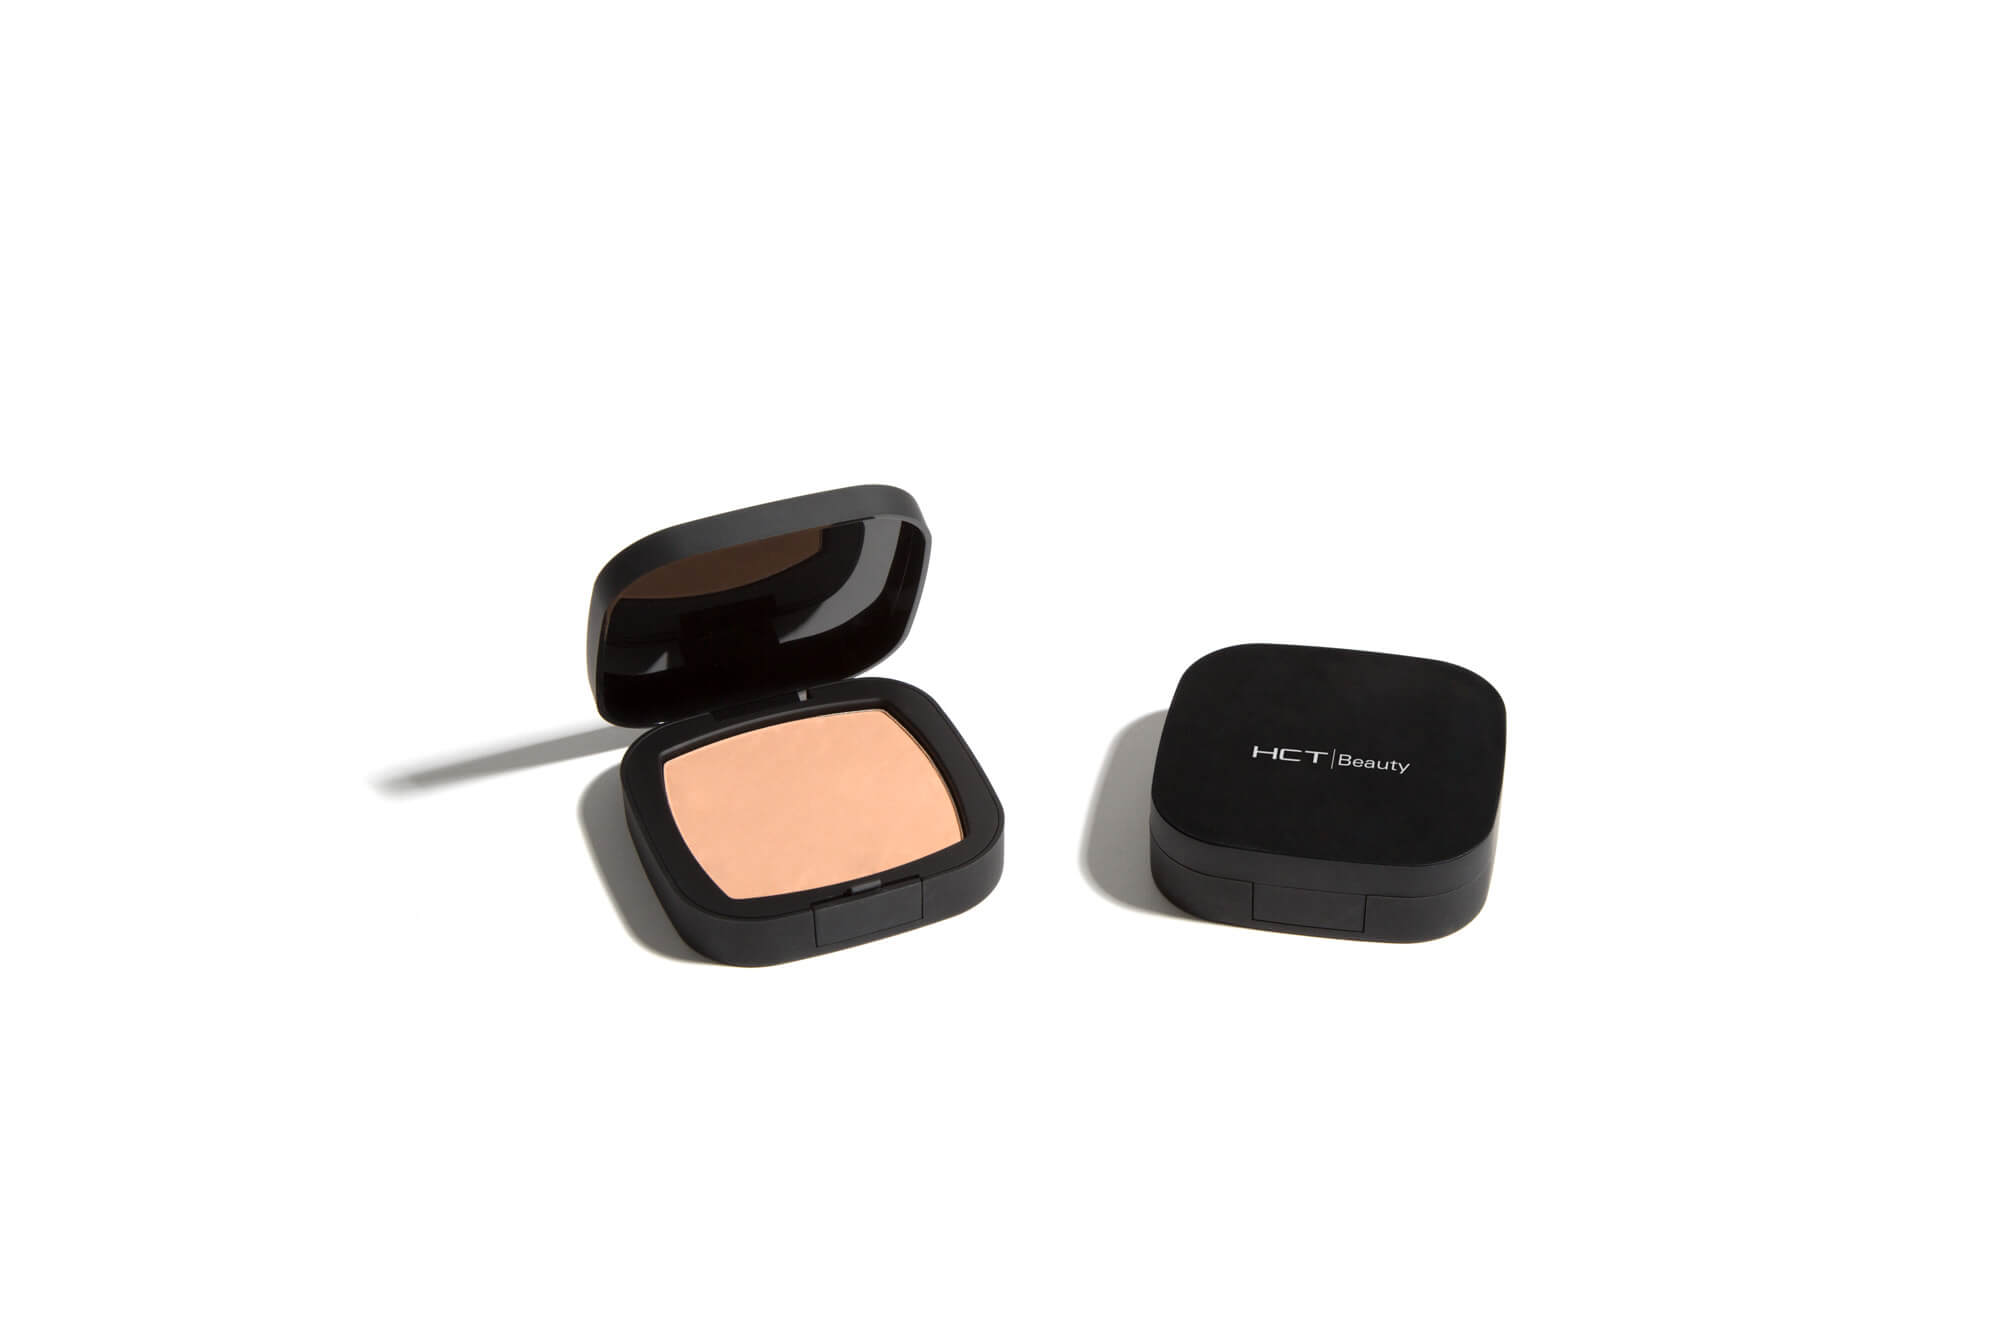 Zen Pressed Powder